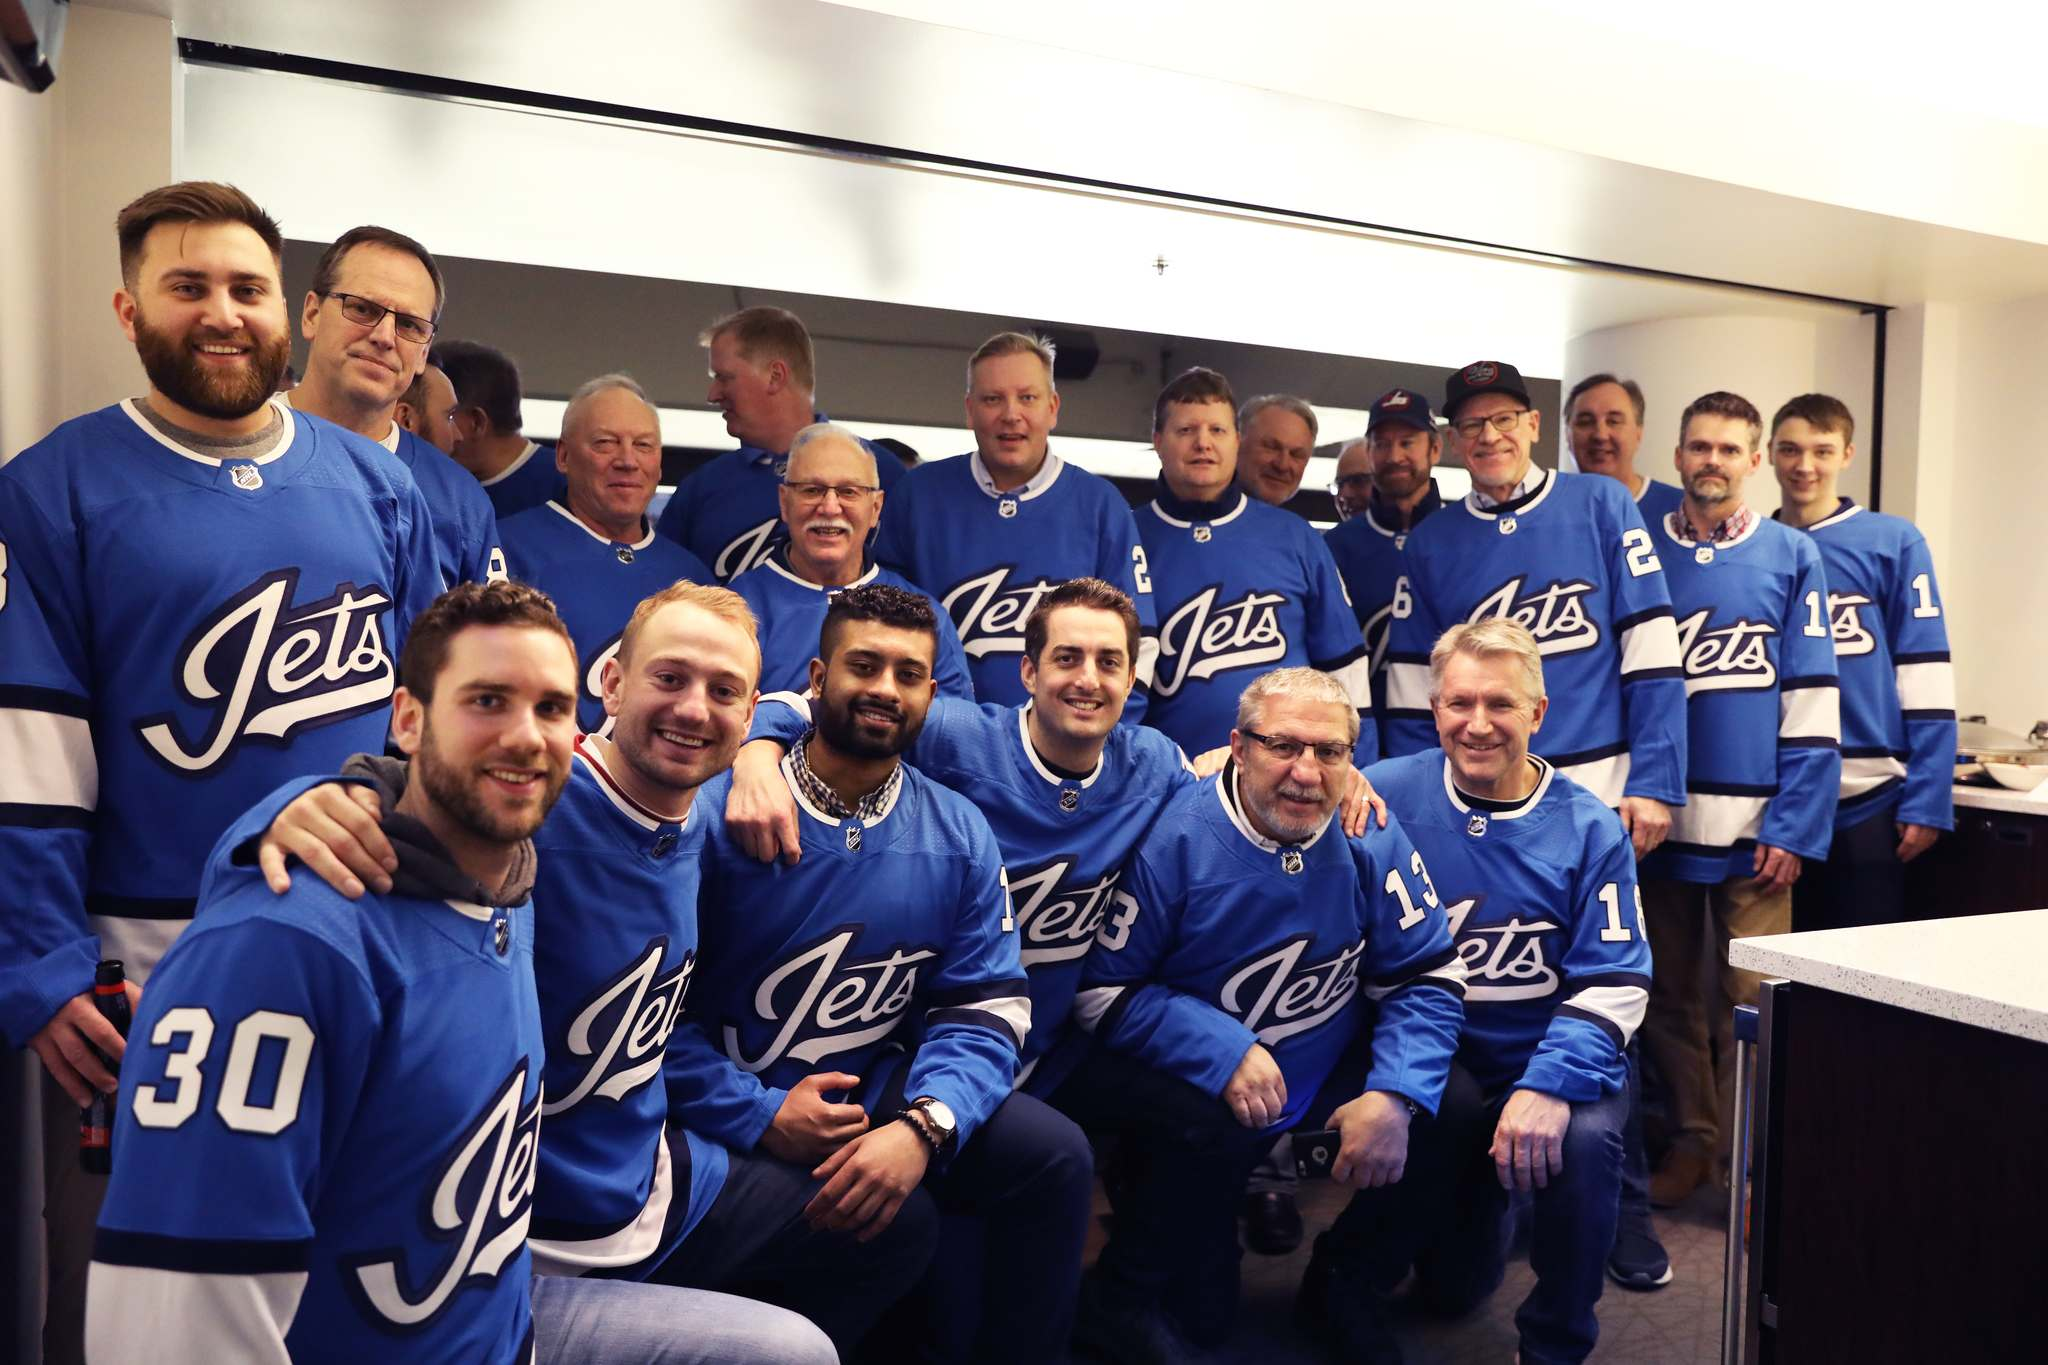 Fathers, family and friends of members of the Winnipeg Jets organization watched the Nashville game from a private box Thursday and were treated to a 5-1 victory over the Predators. (Supplied)</p>